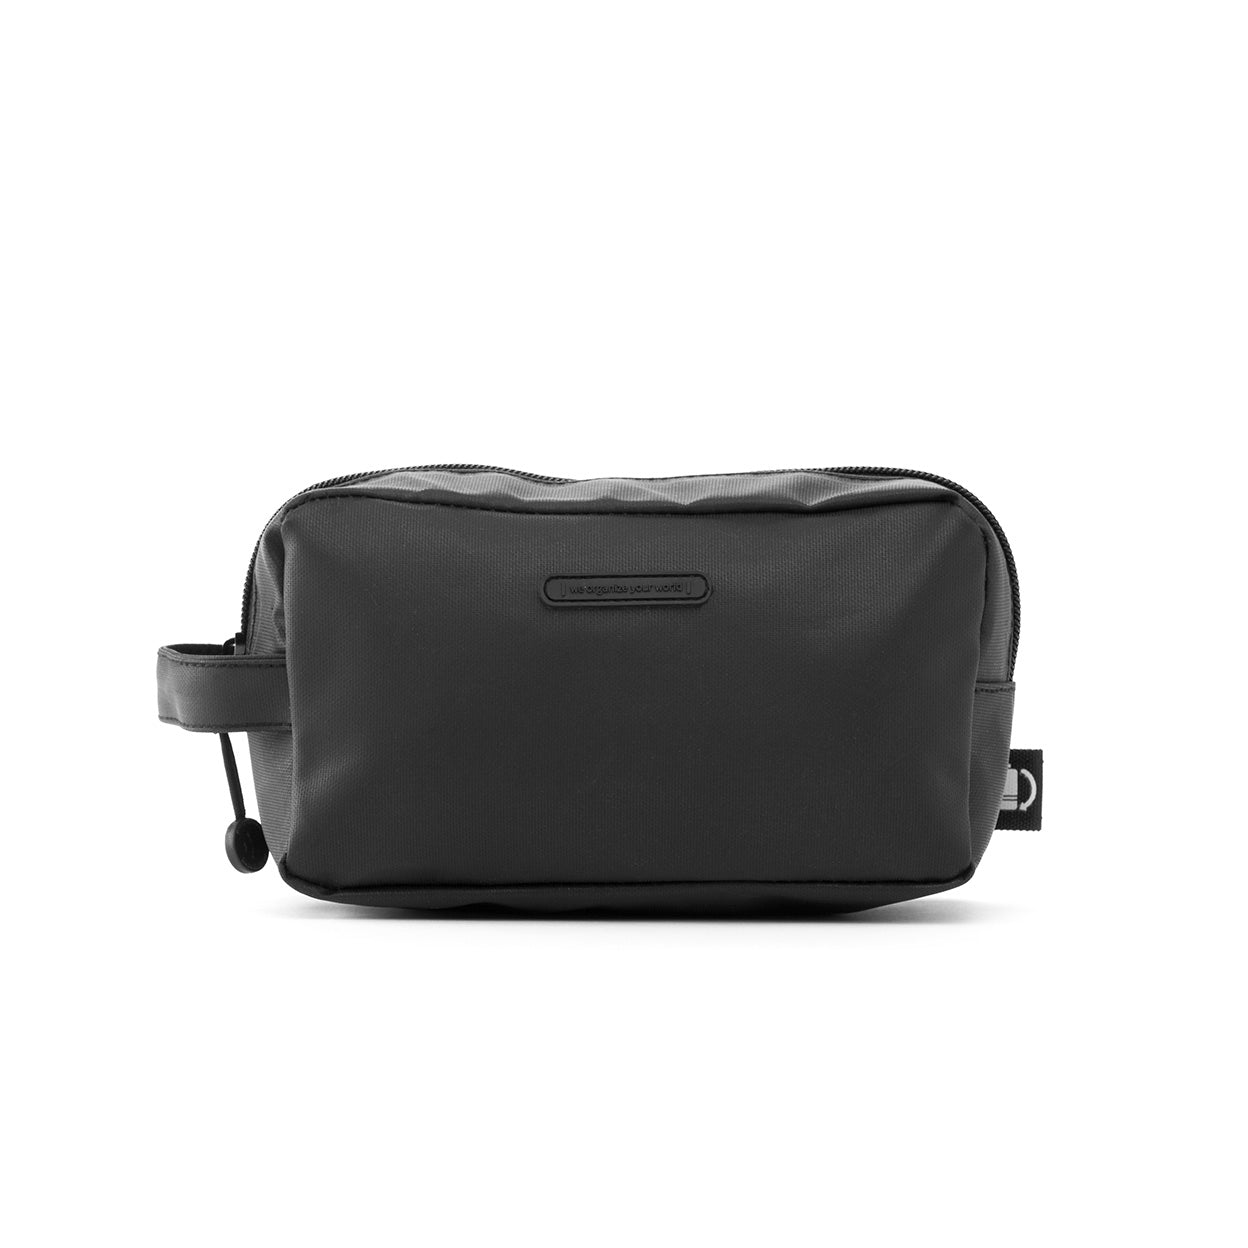 Roomy Case | Black | Accessories | Lefrik | [product_tag] - Fair Bazaar Ethical Living